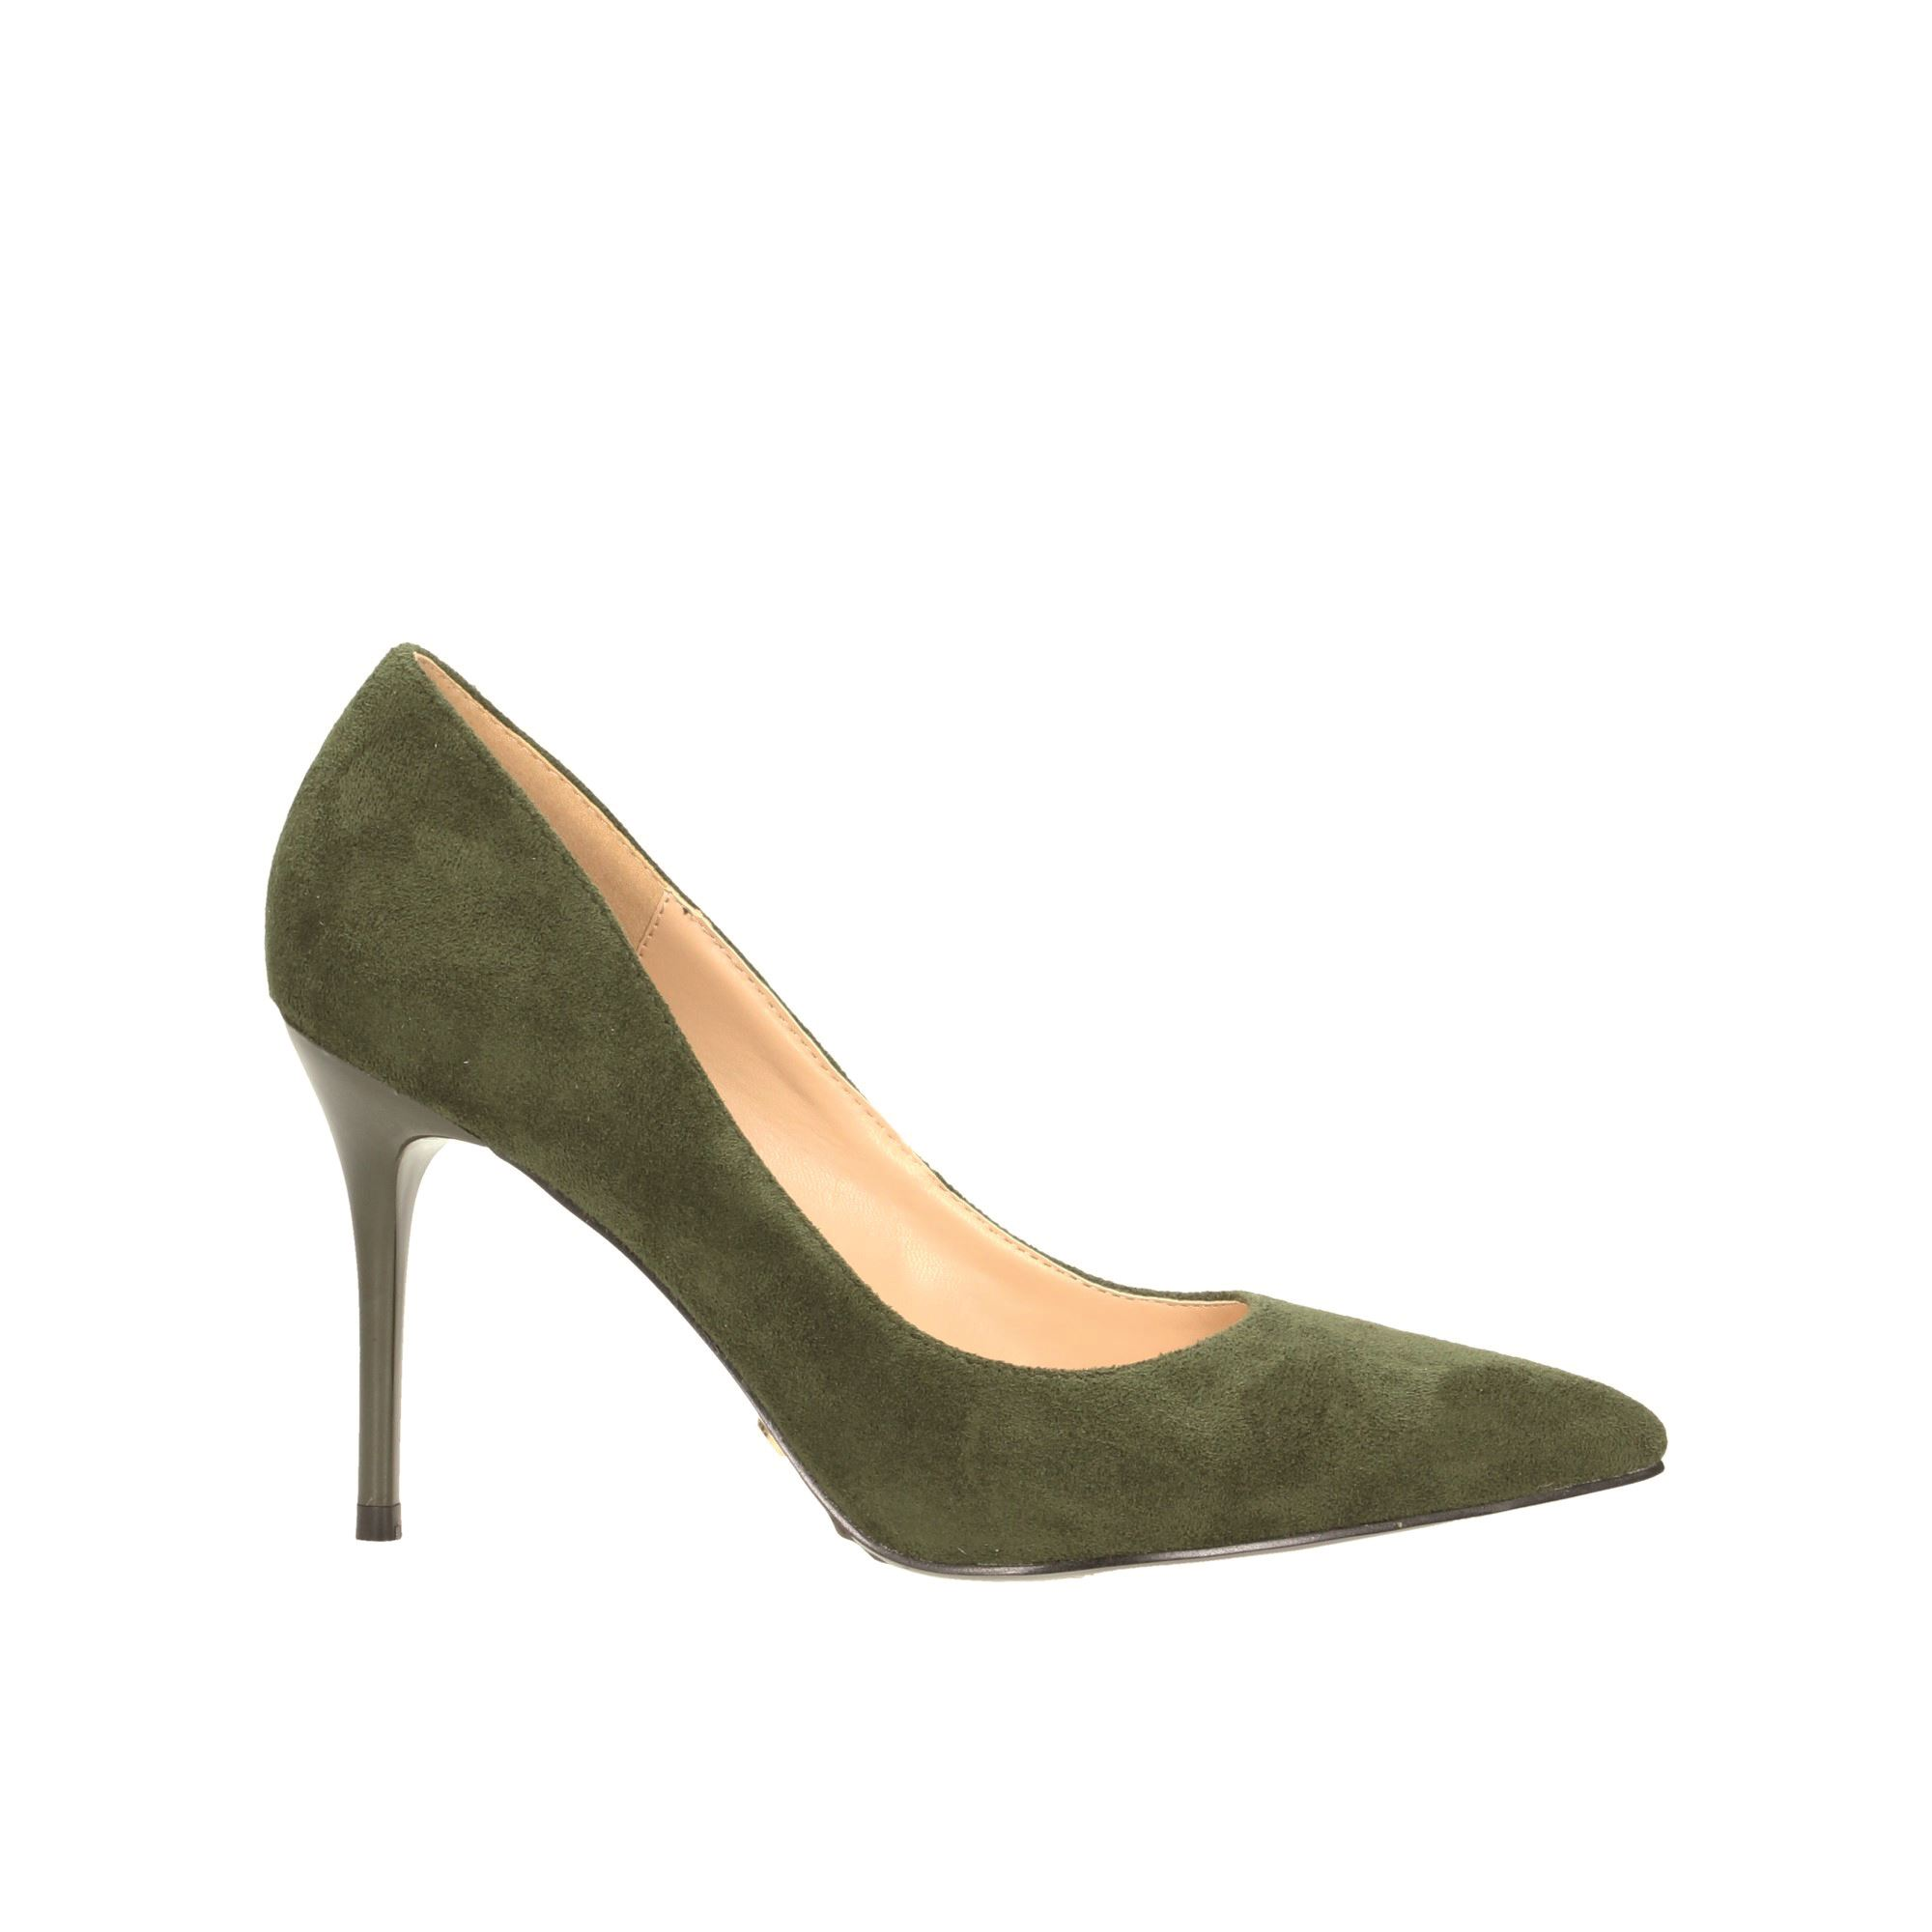 Tata Italia Shoes Woman Décolleté Green 89547-9